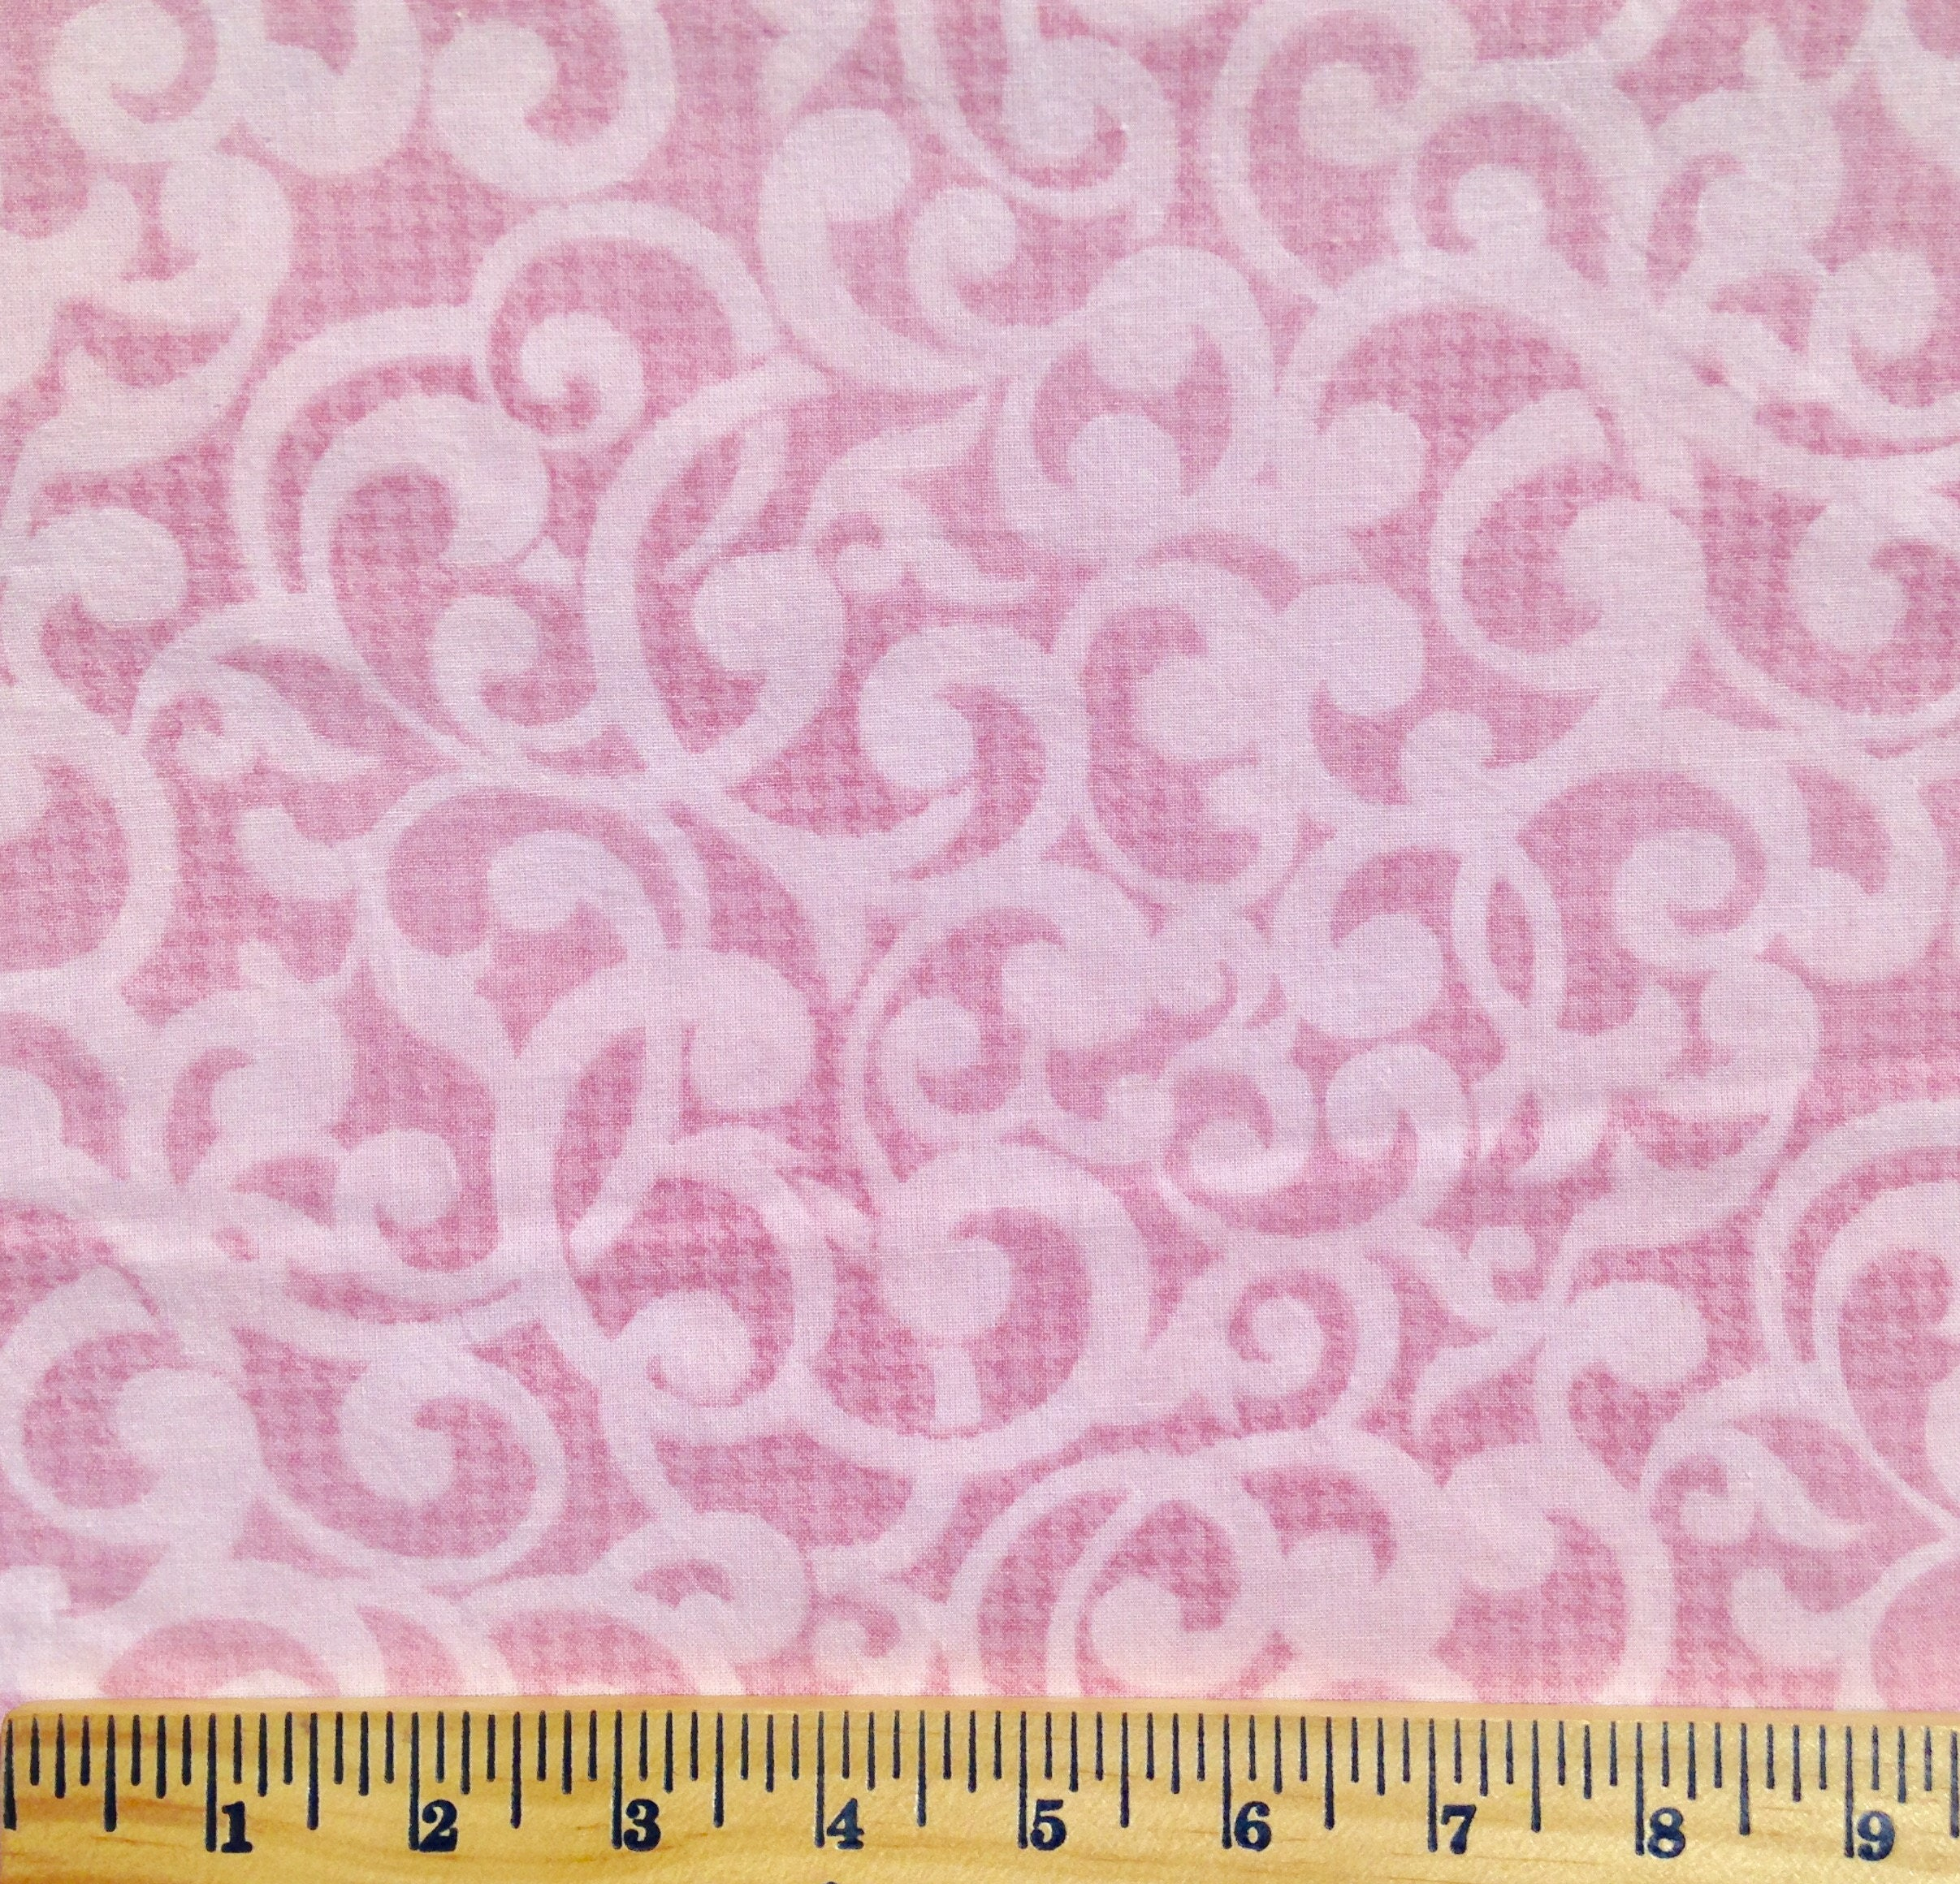 Quilt backing Pink swirl extra wide quilt backing 3 yards : wide quilt backing fabric sale - Adamdwight.com